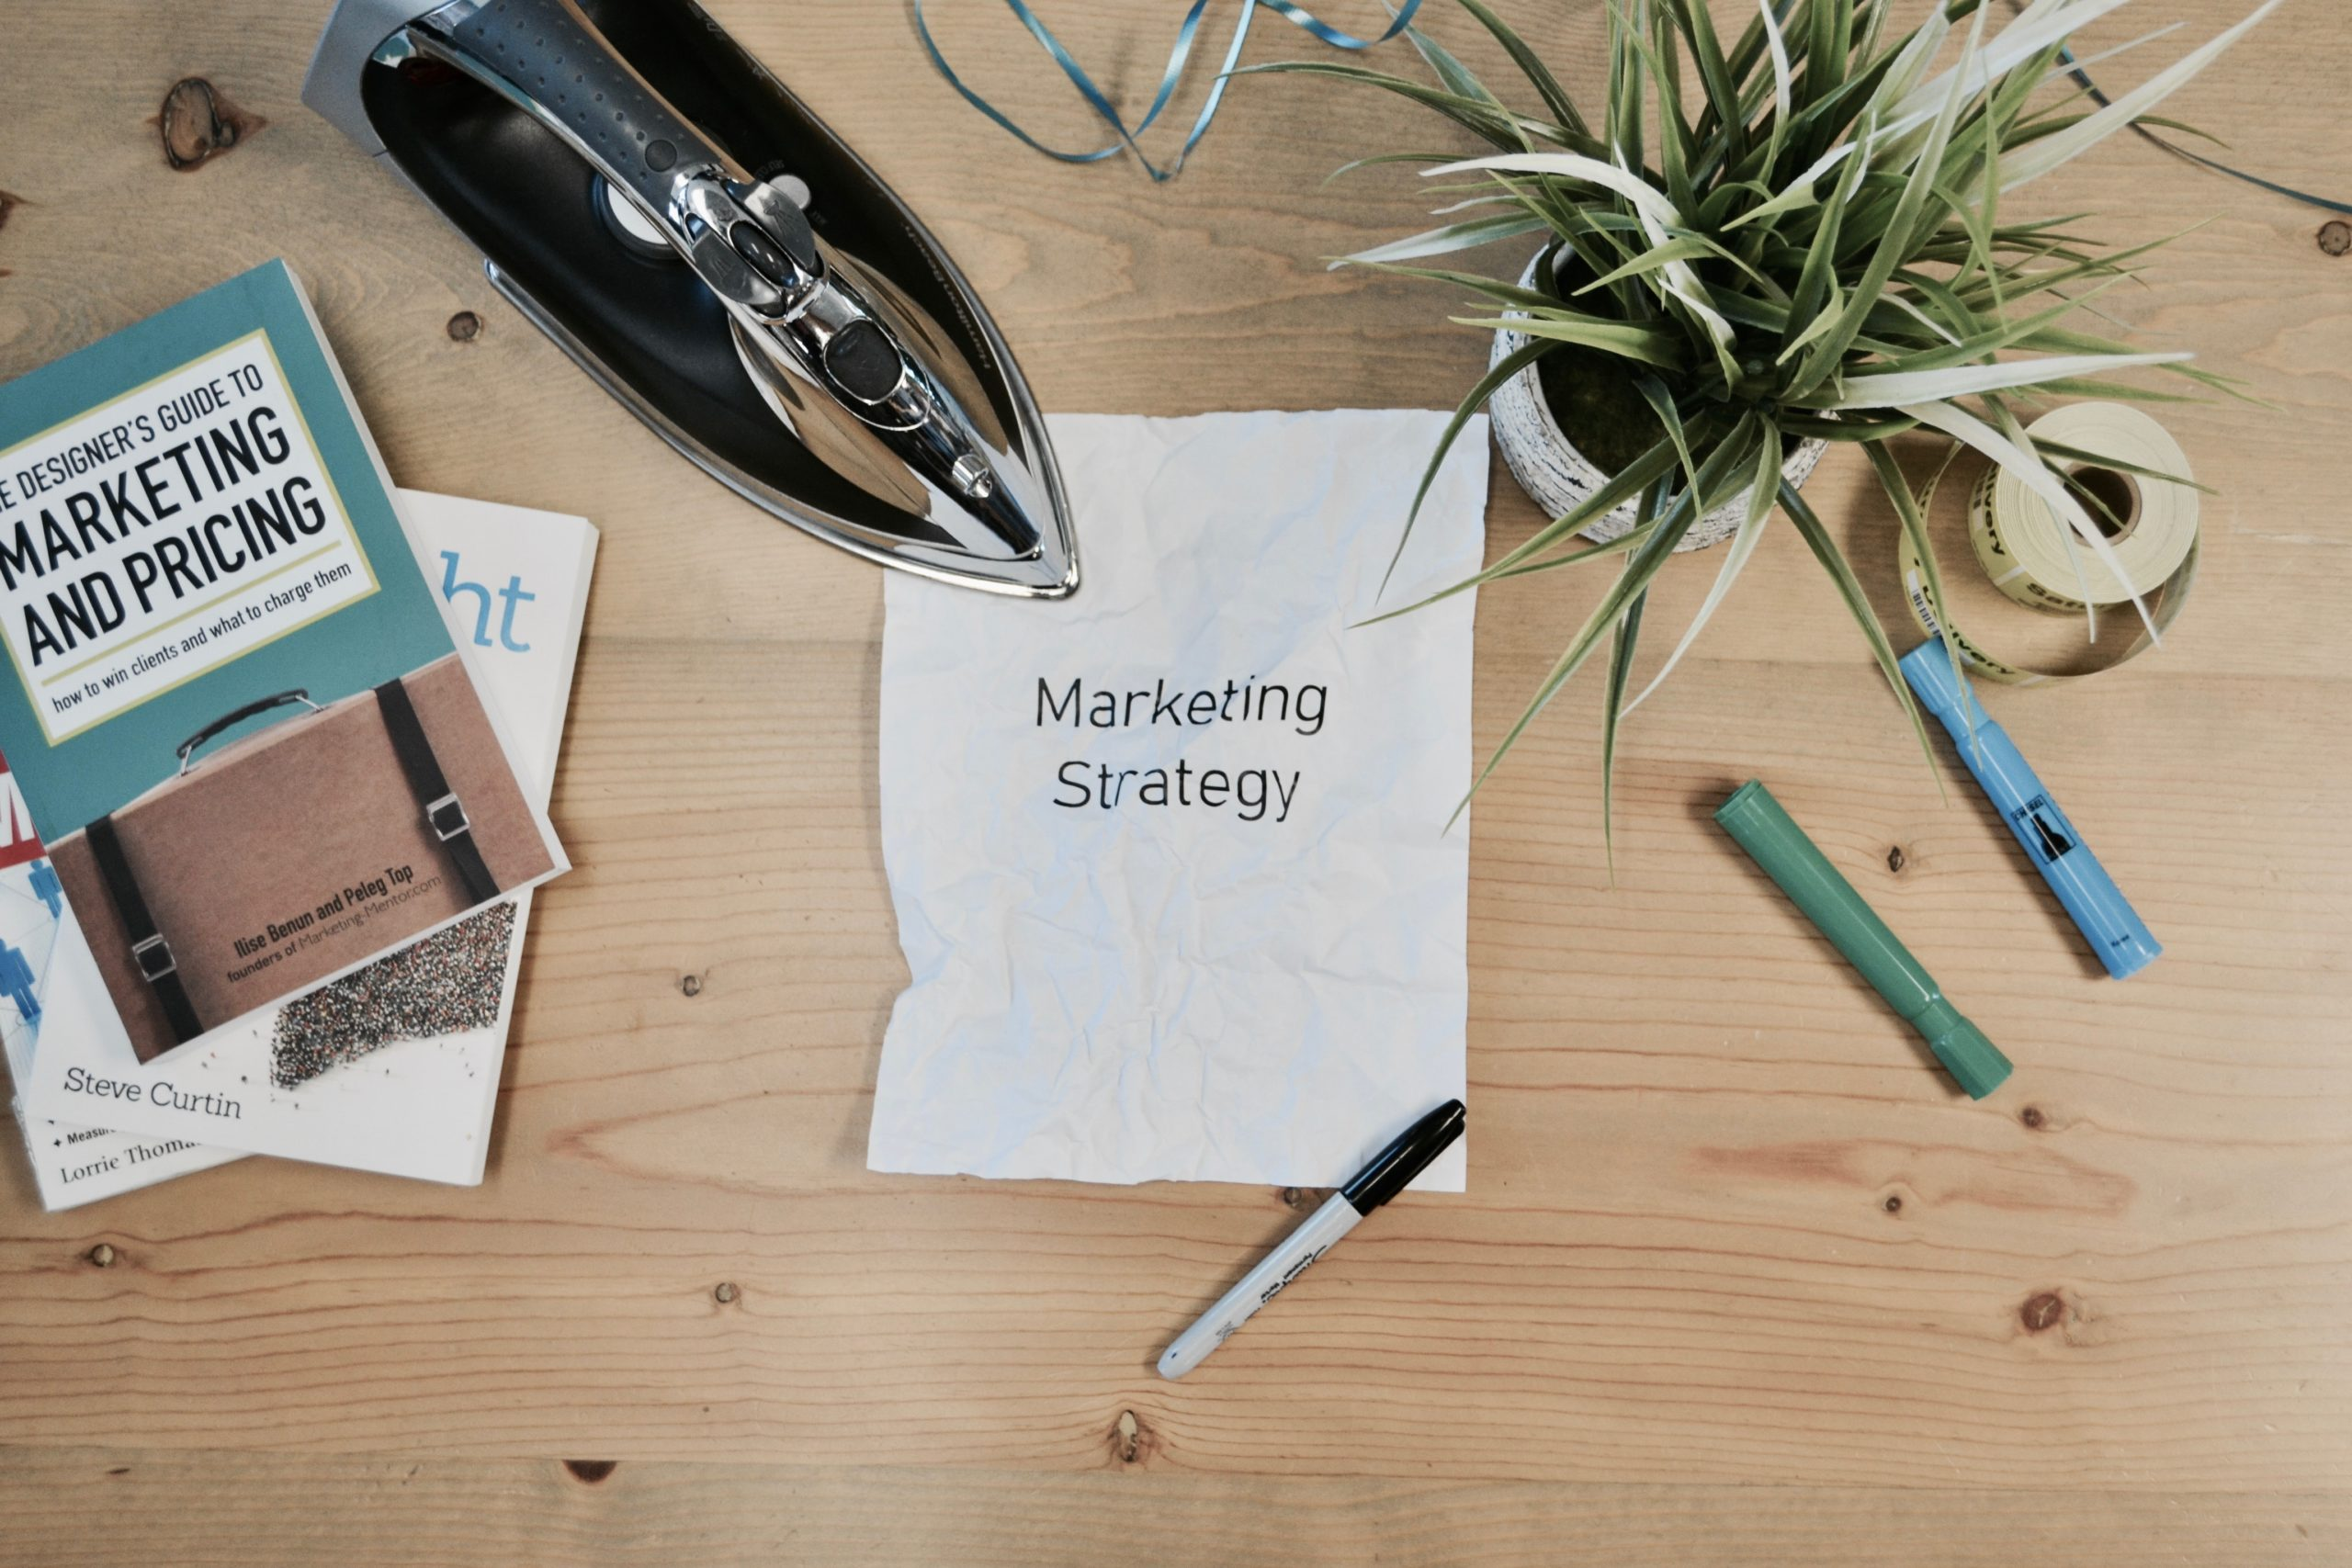 Inbound marketing strategy paper and stationary